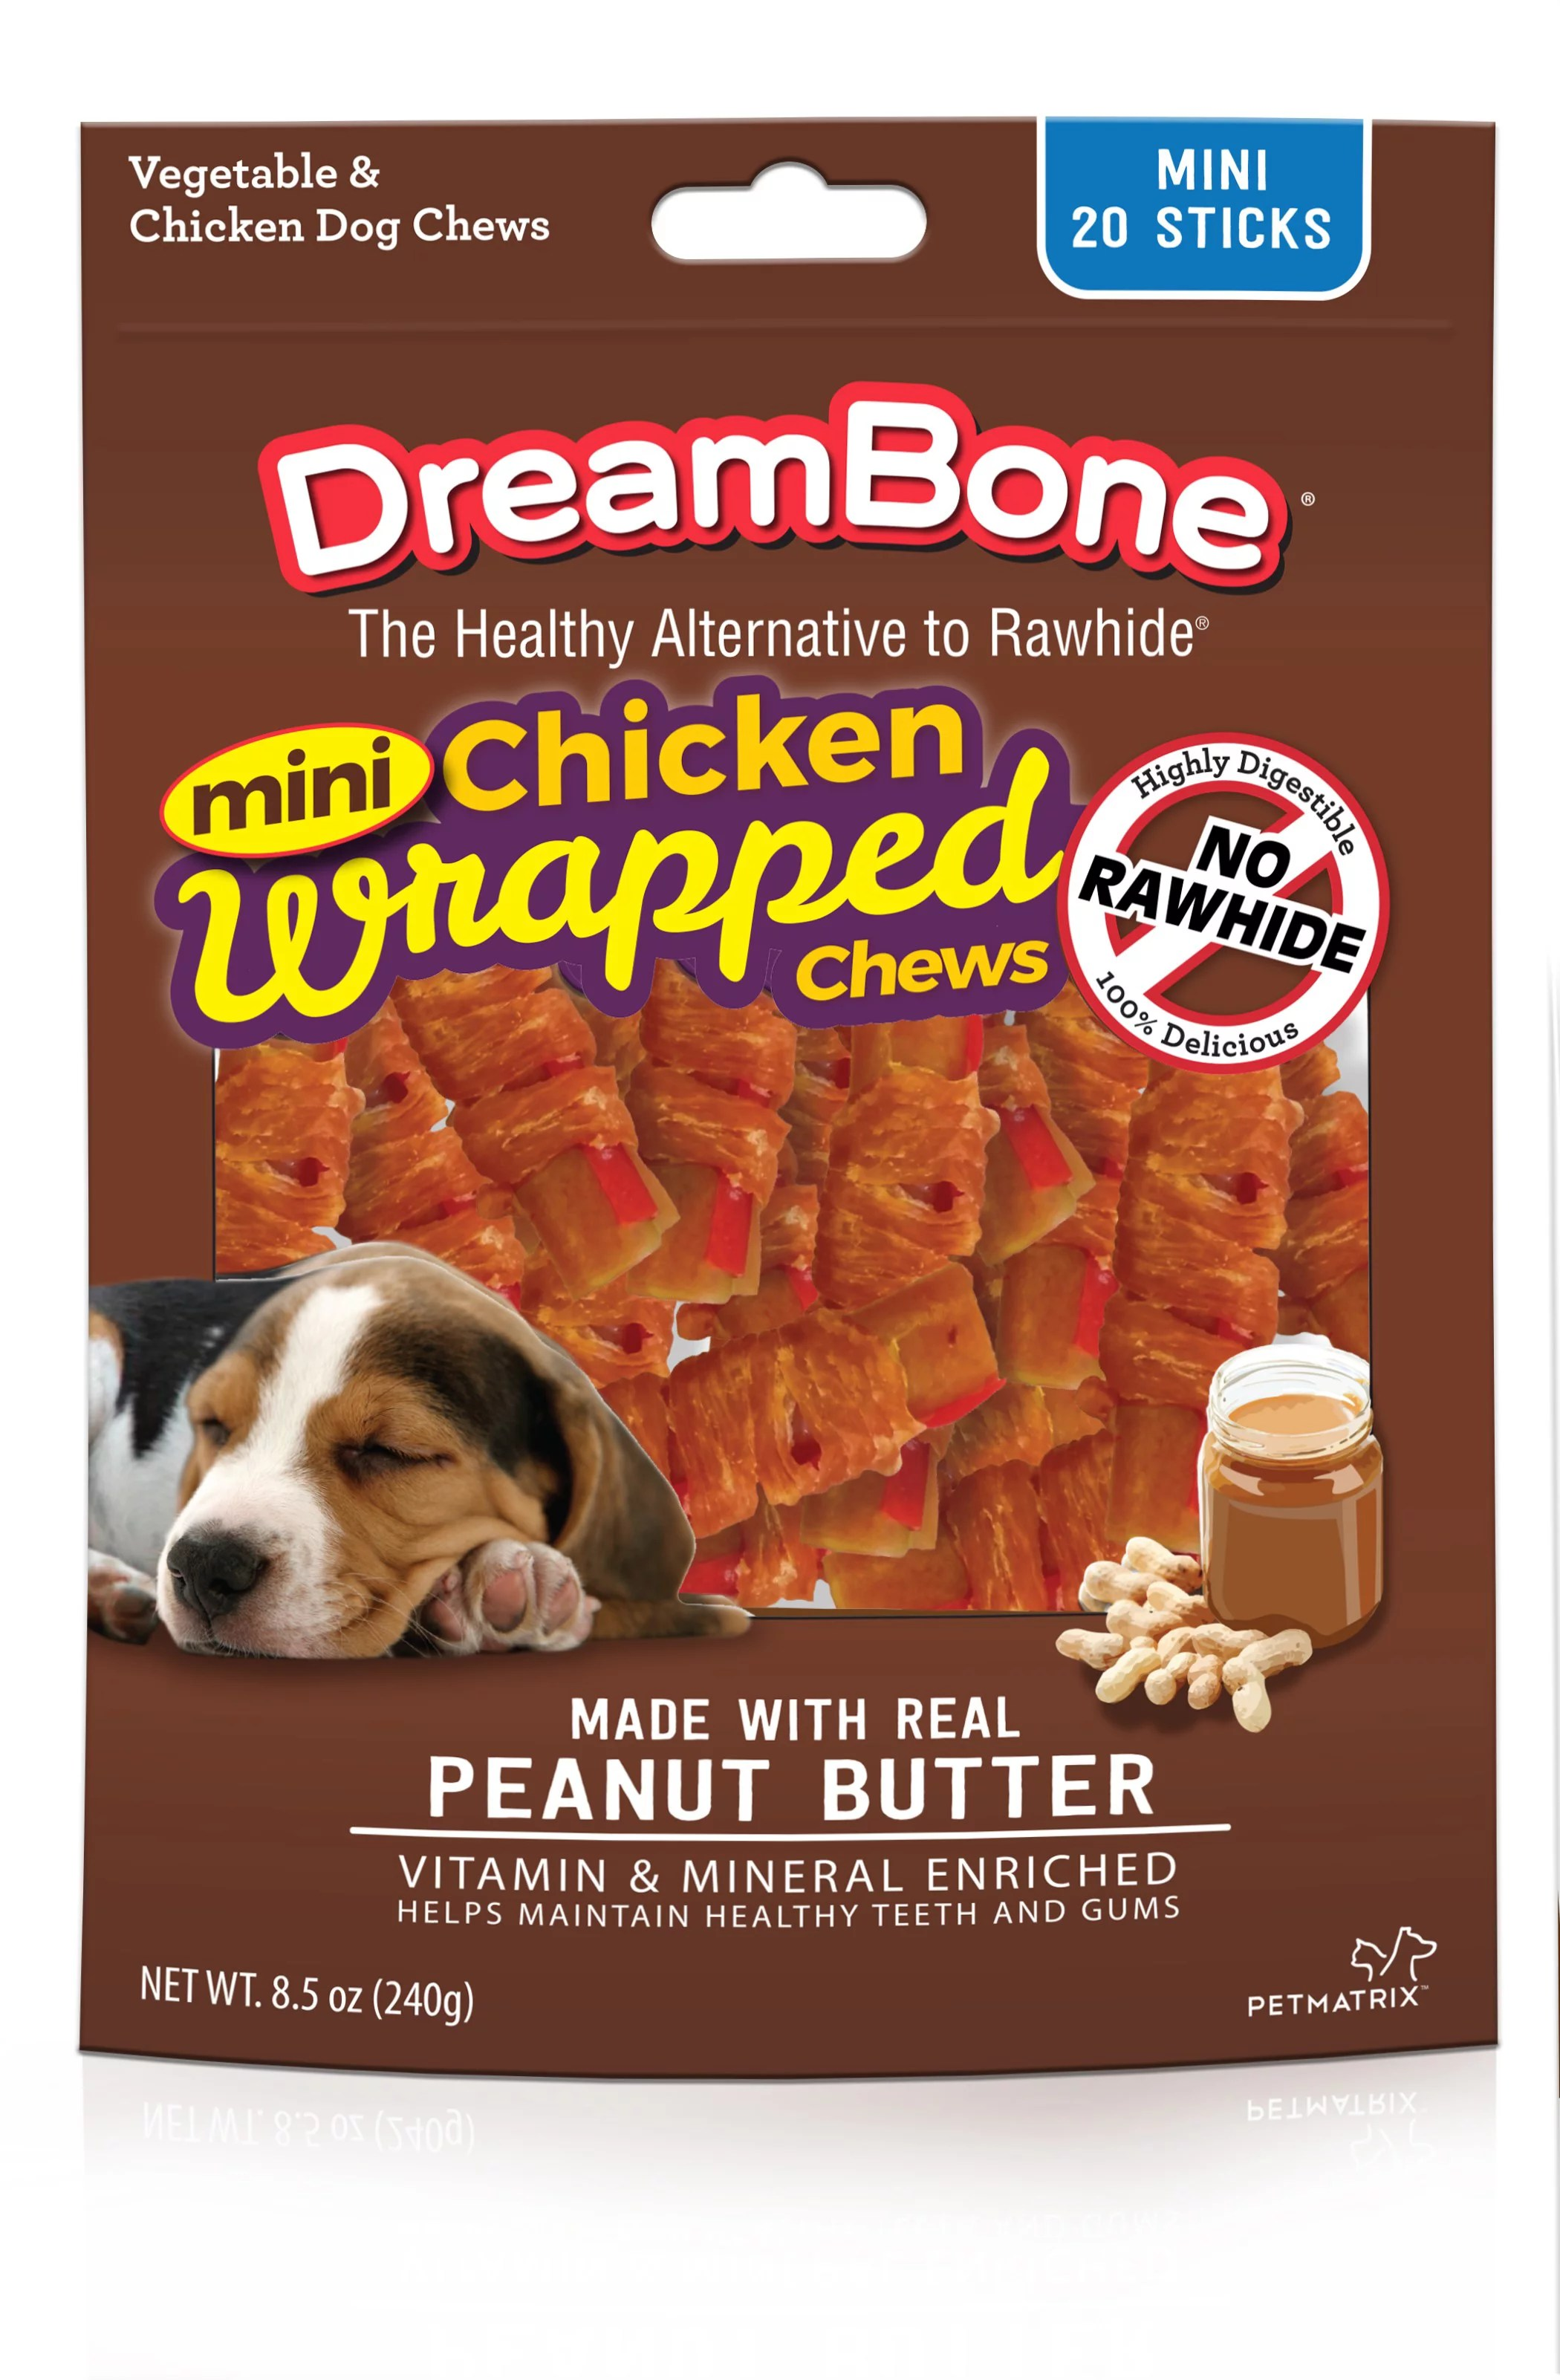 DreamBone Mini Chicken Wrapped Chews with Peanut Butter Rawhide-Free Dog Chews, 8.5 Oz. (20 Count)